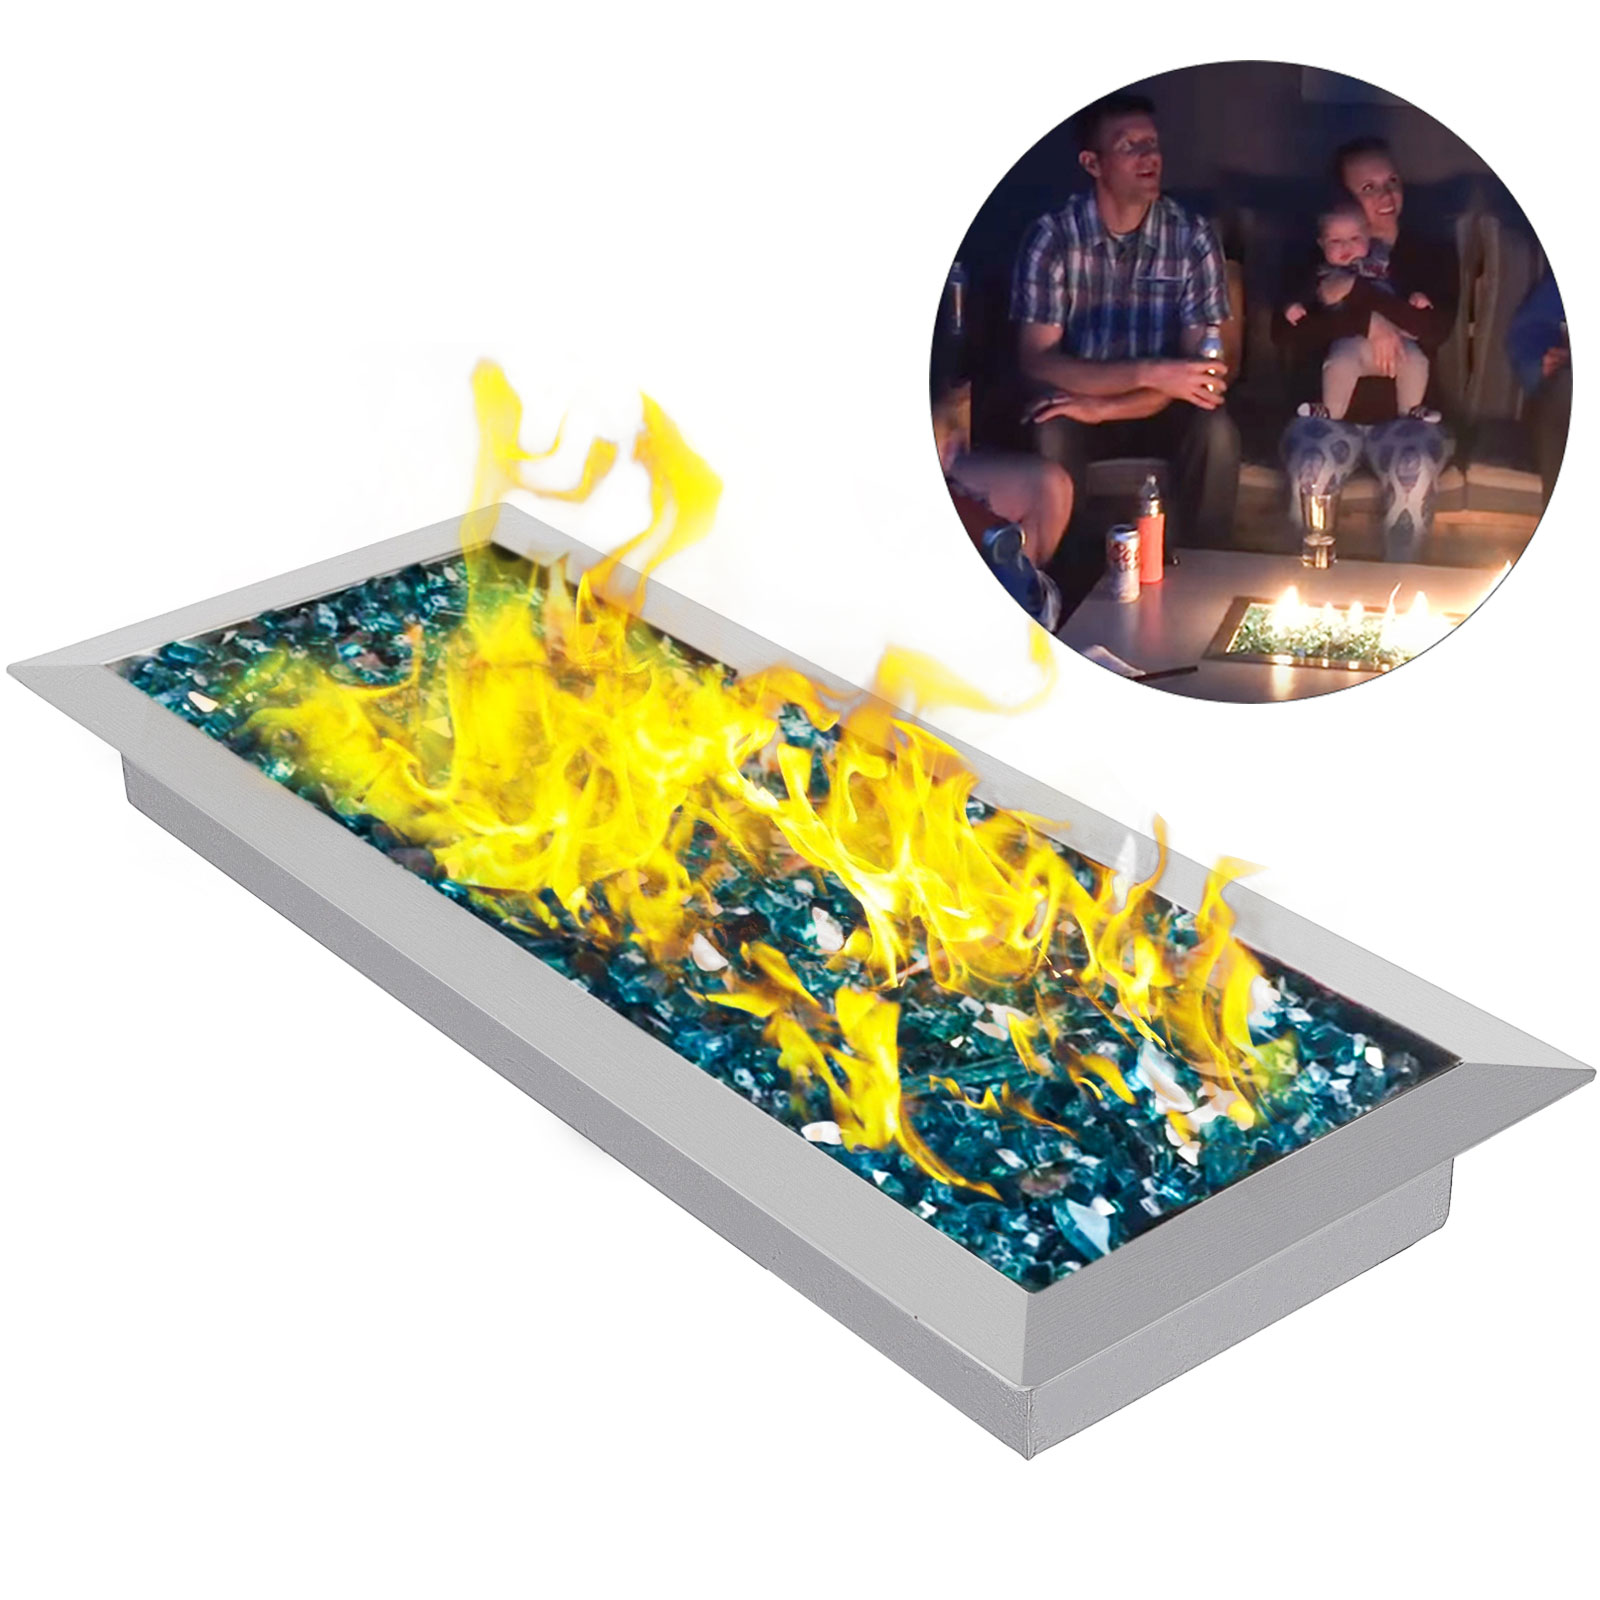 Fire Pit Pan and Burner 20 By 8-Inch Rectangular Bowl Courtyard Drop-In Home